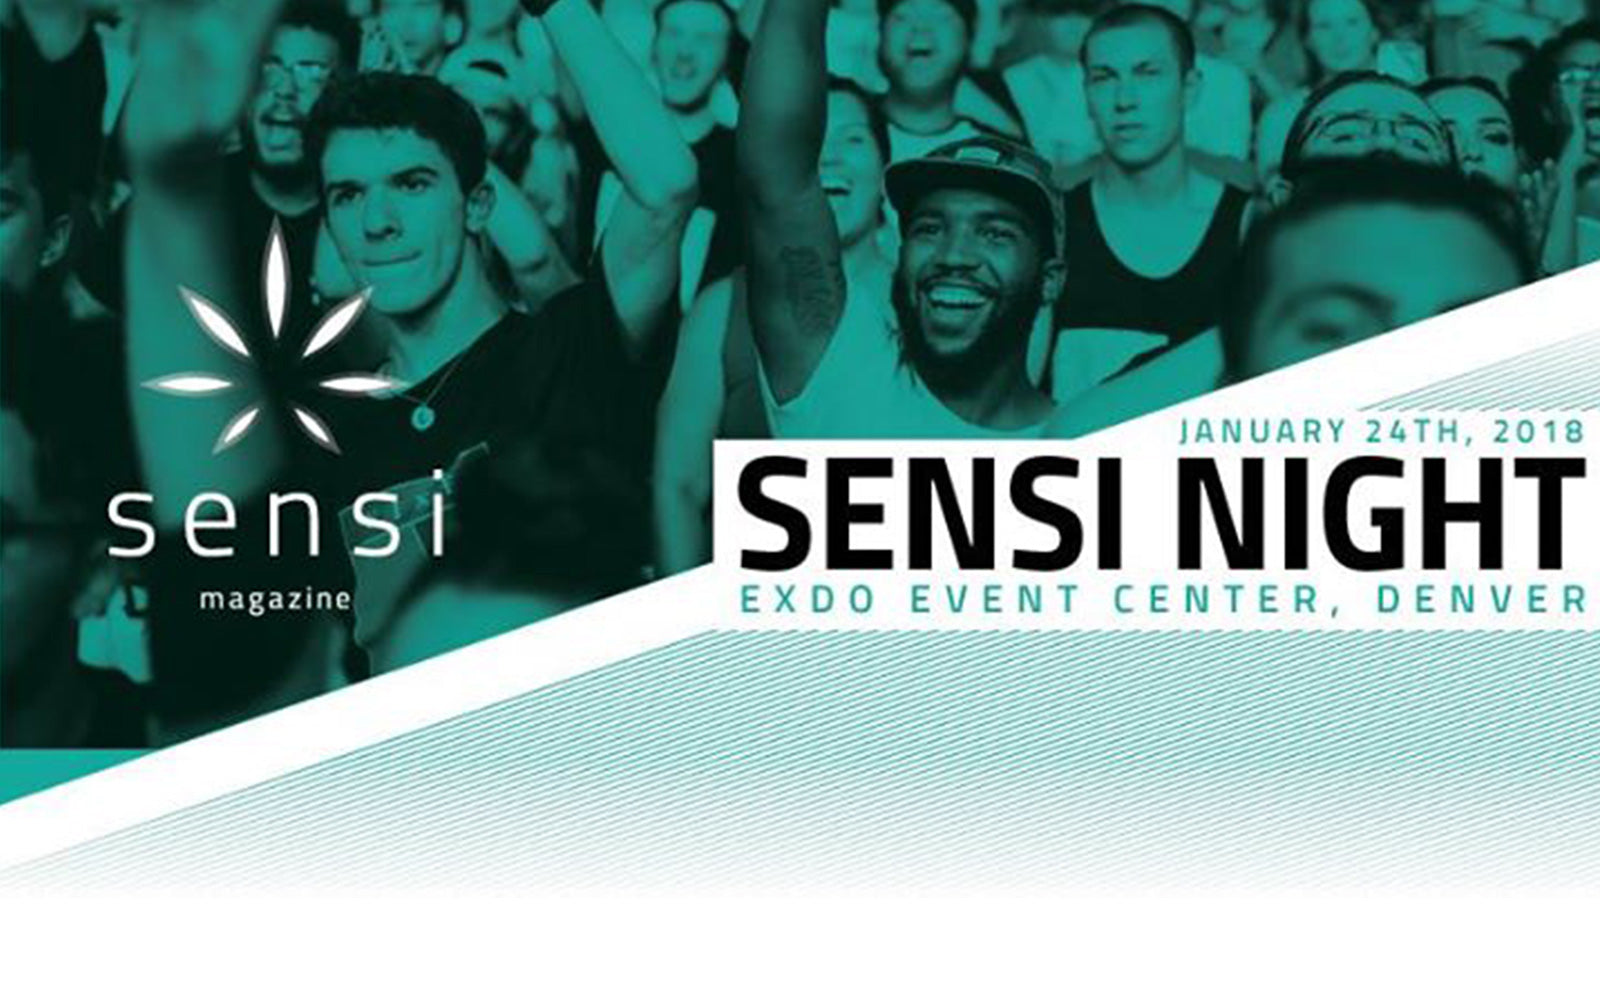 Sensi Night - Denver January 2018